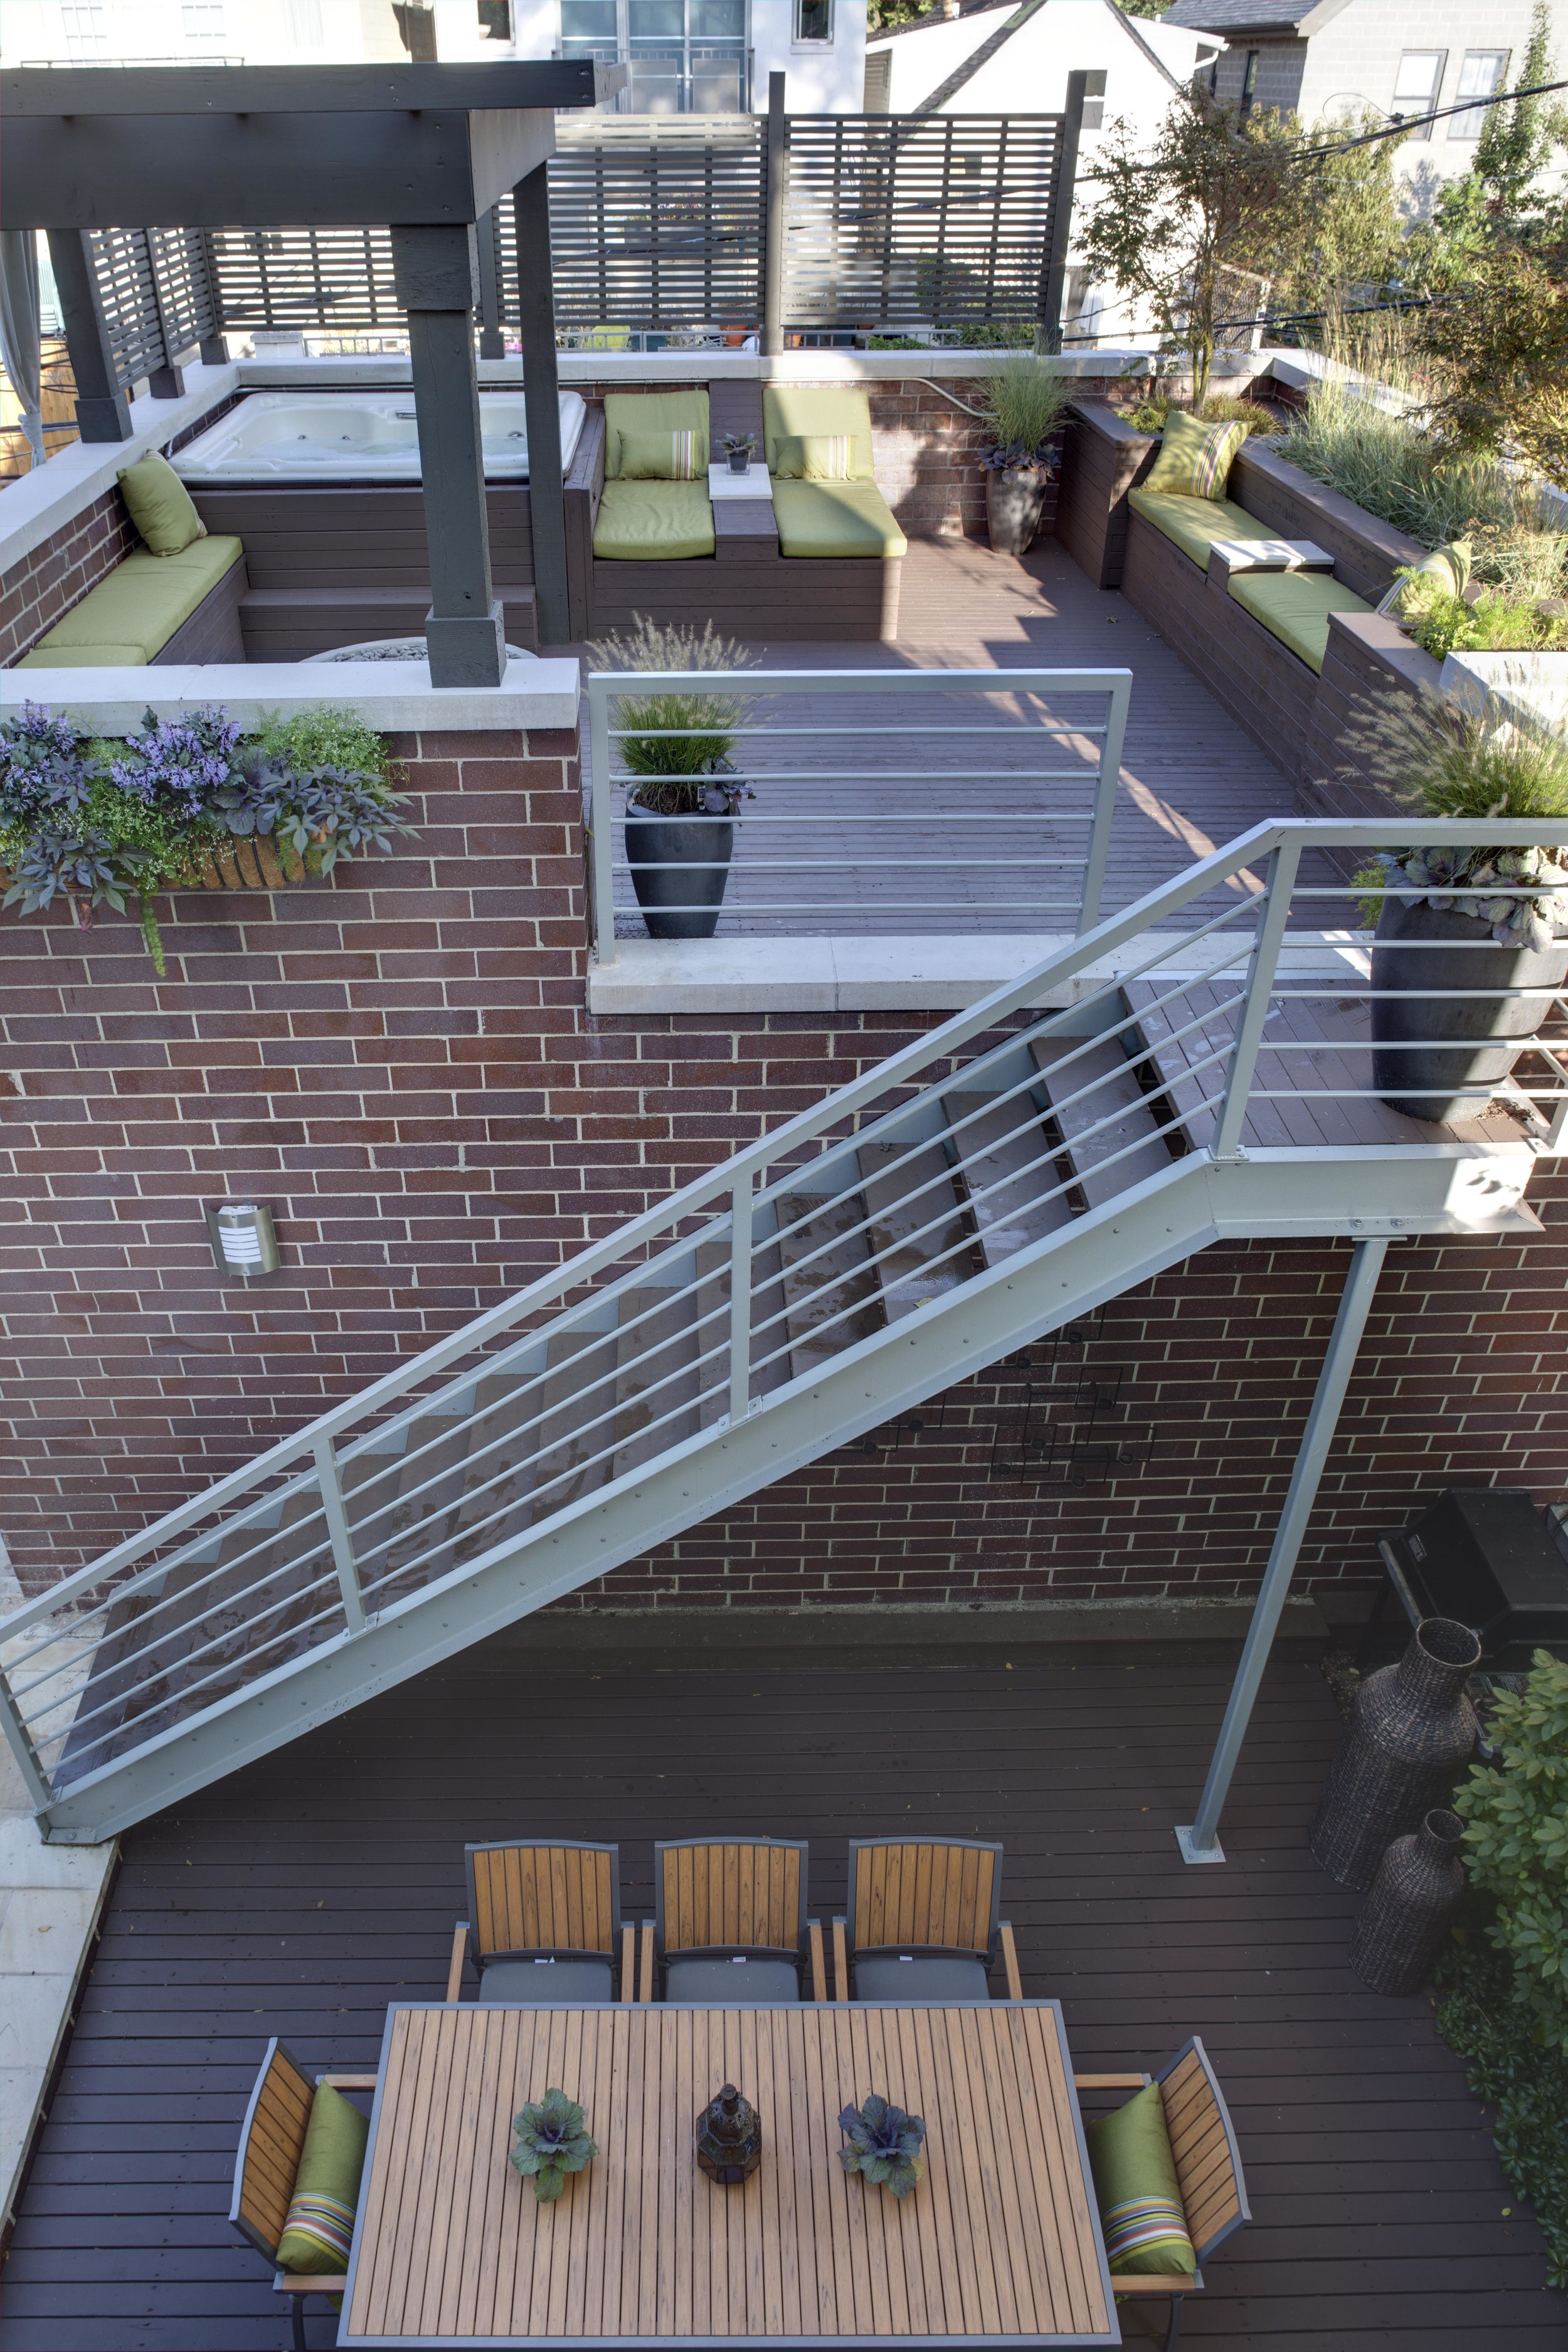 Roof Deck and outdoor dining - Urban - NDC 2010